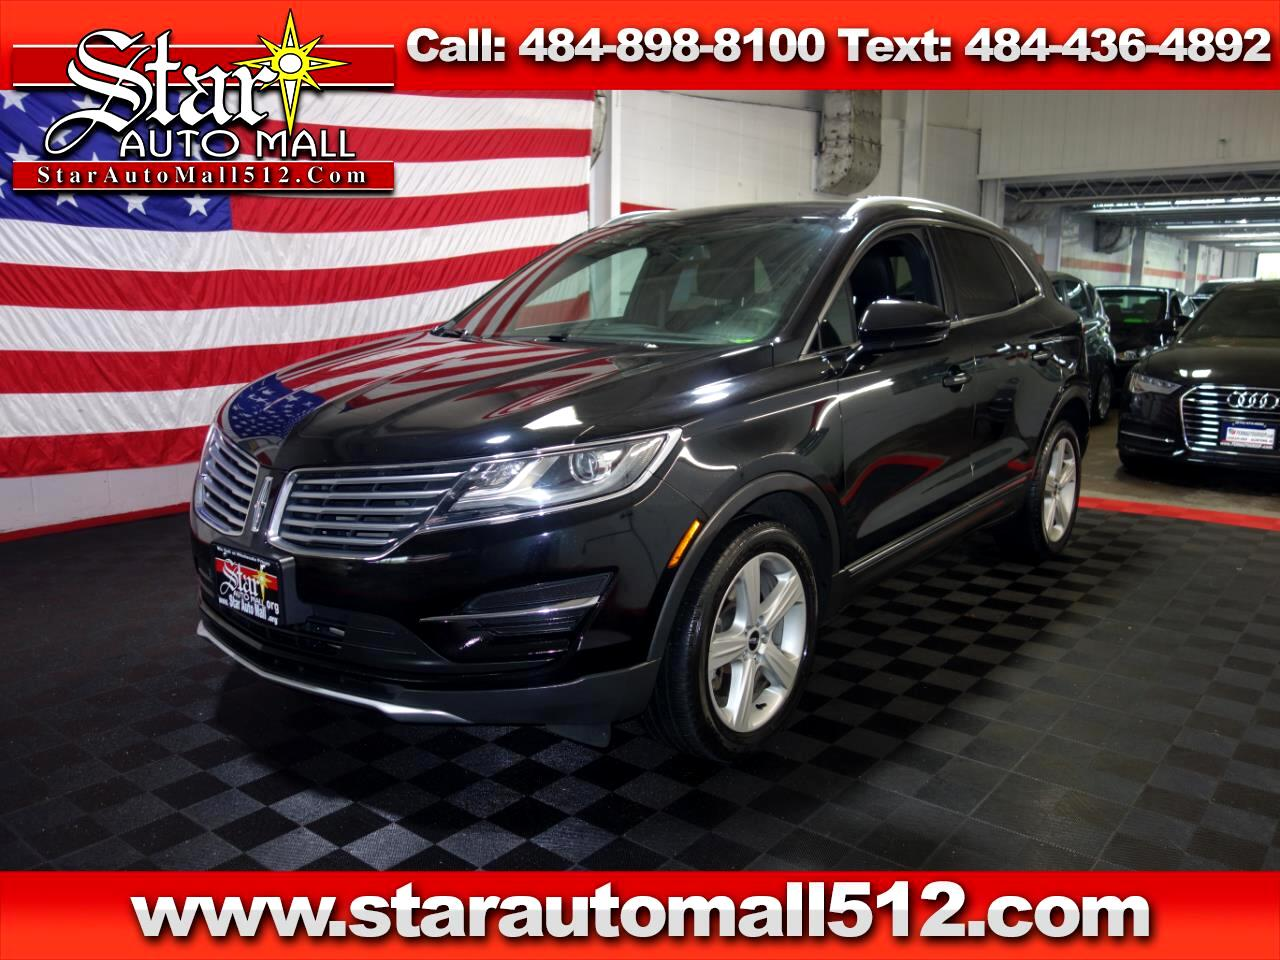 2016 Lincoln MKC AWD 4dr Premier